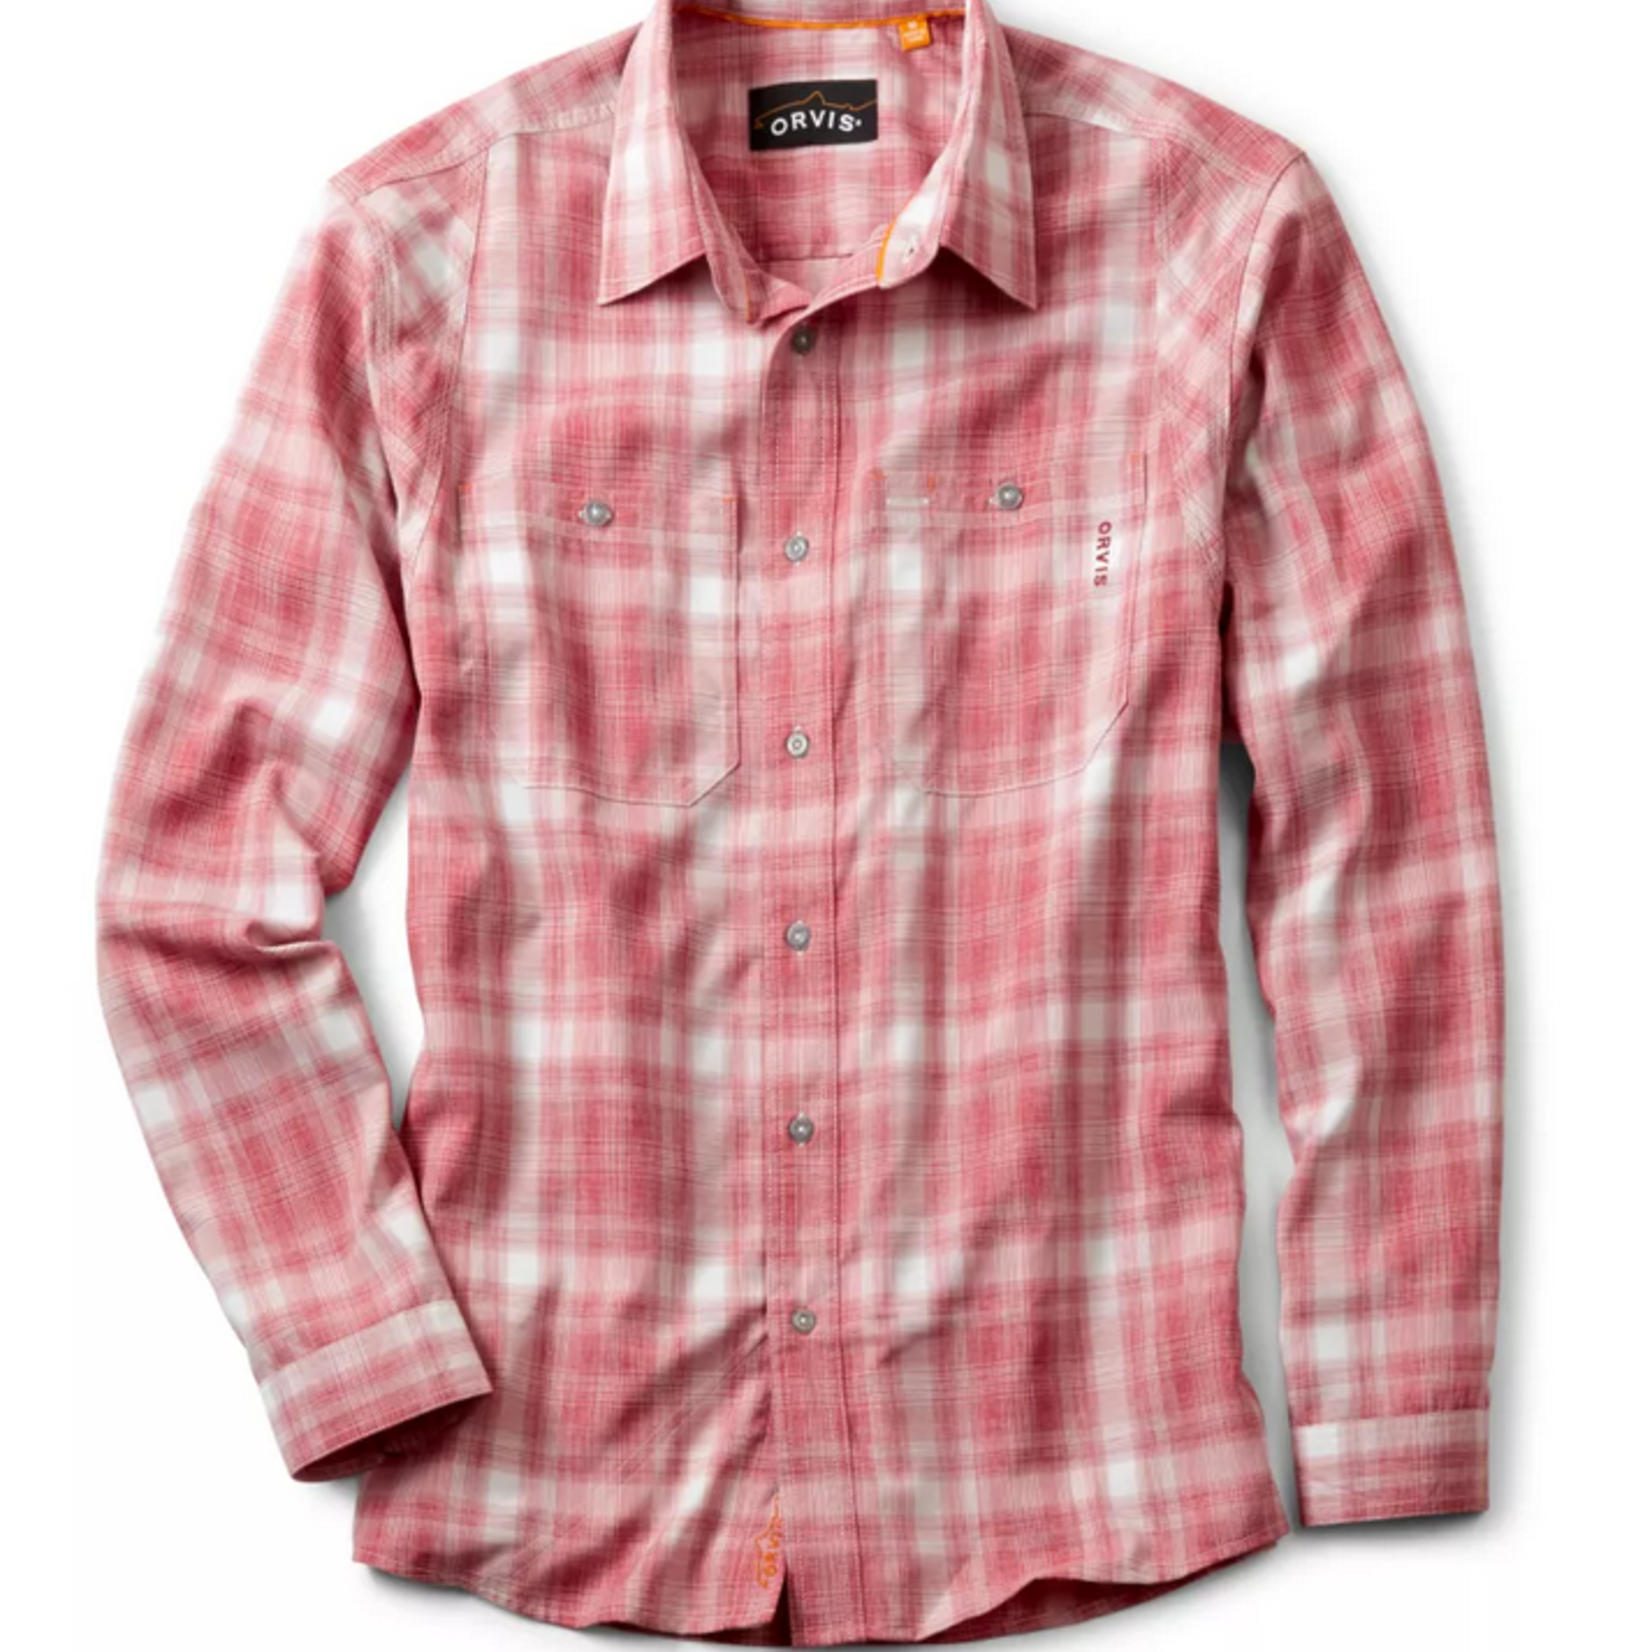 Orvis Tech Chambray Work Shirt Currant